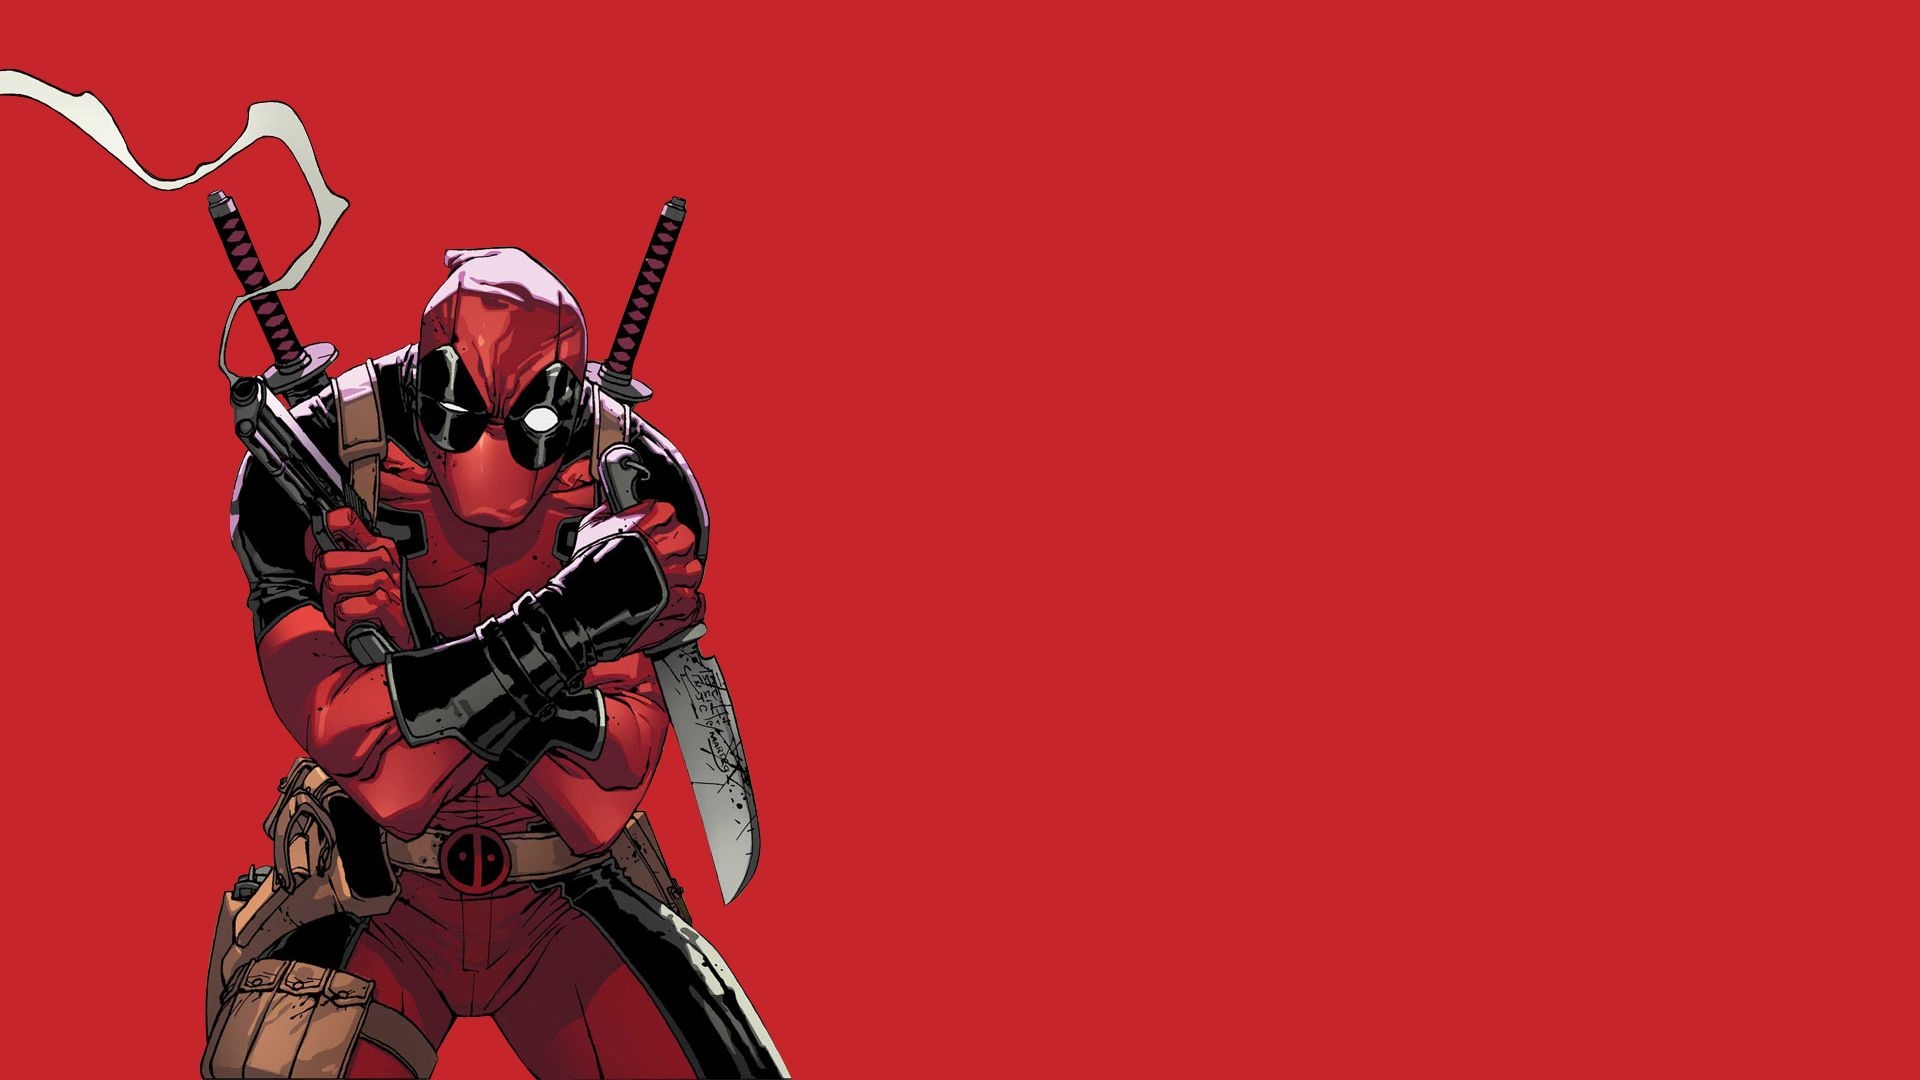 Free Deadpool Wallpaper Widescreen Deadpool Wallpaper Deadpool